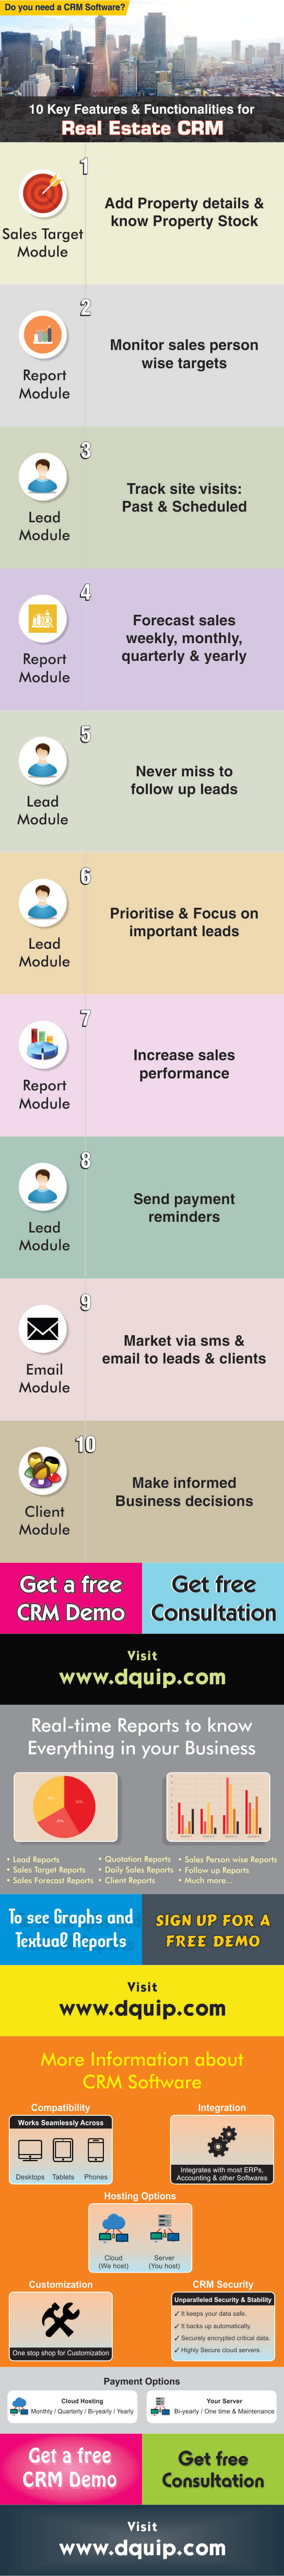 Infographic on Features and Functionalities of Real Estate CRM